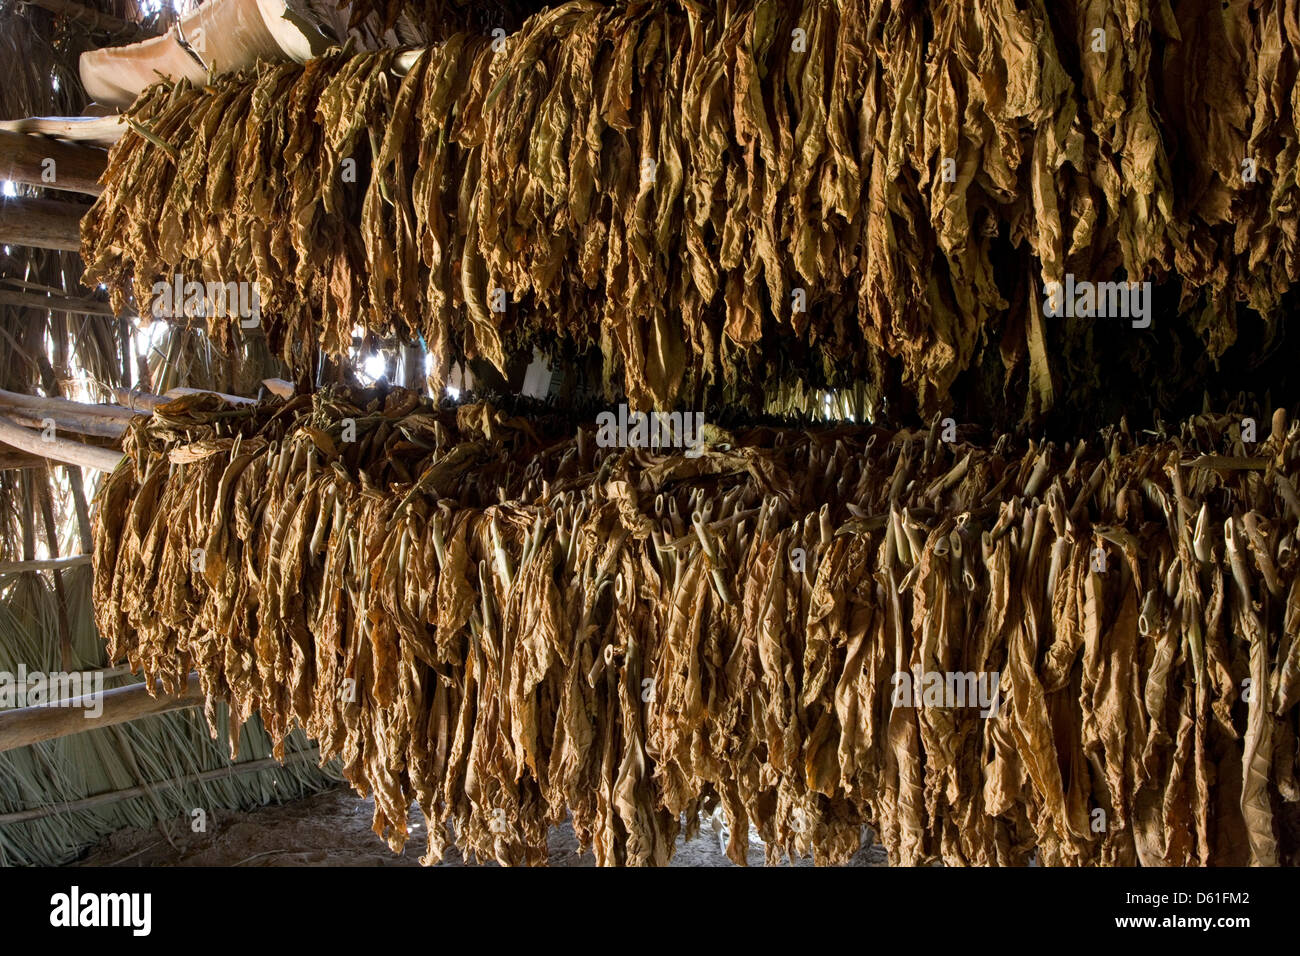 Cordillera de Guaniguanico: tobacco leaves drying in shed - Stock Image